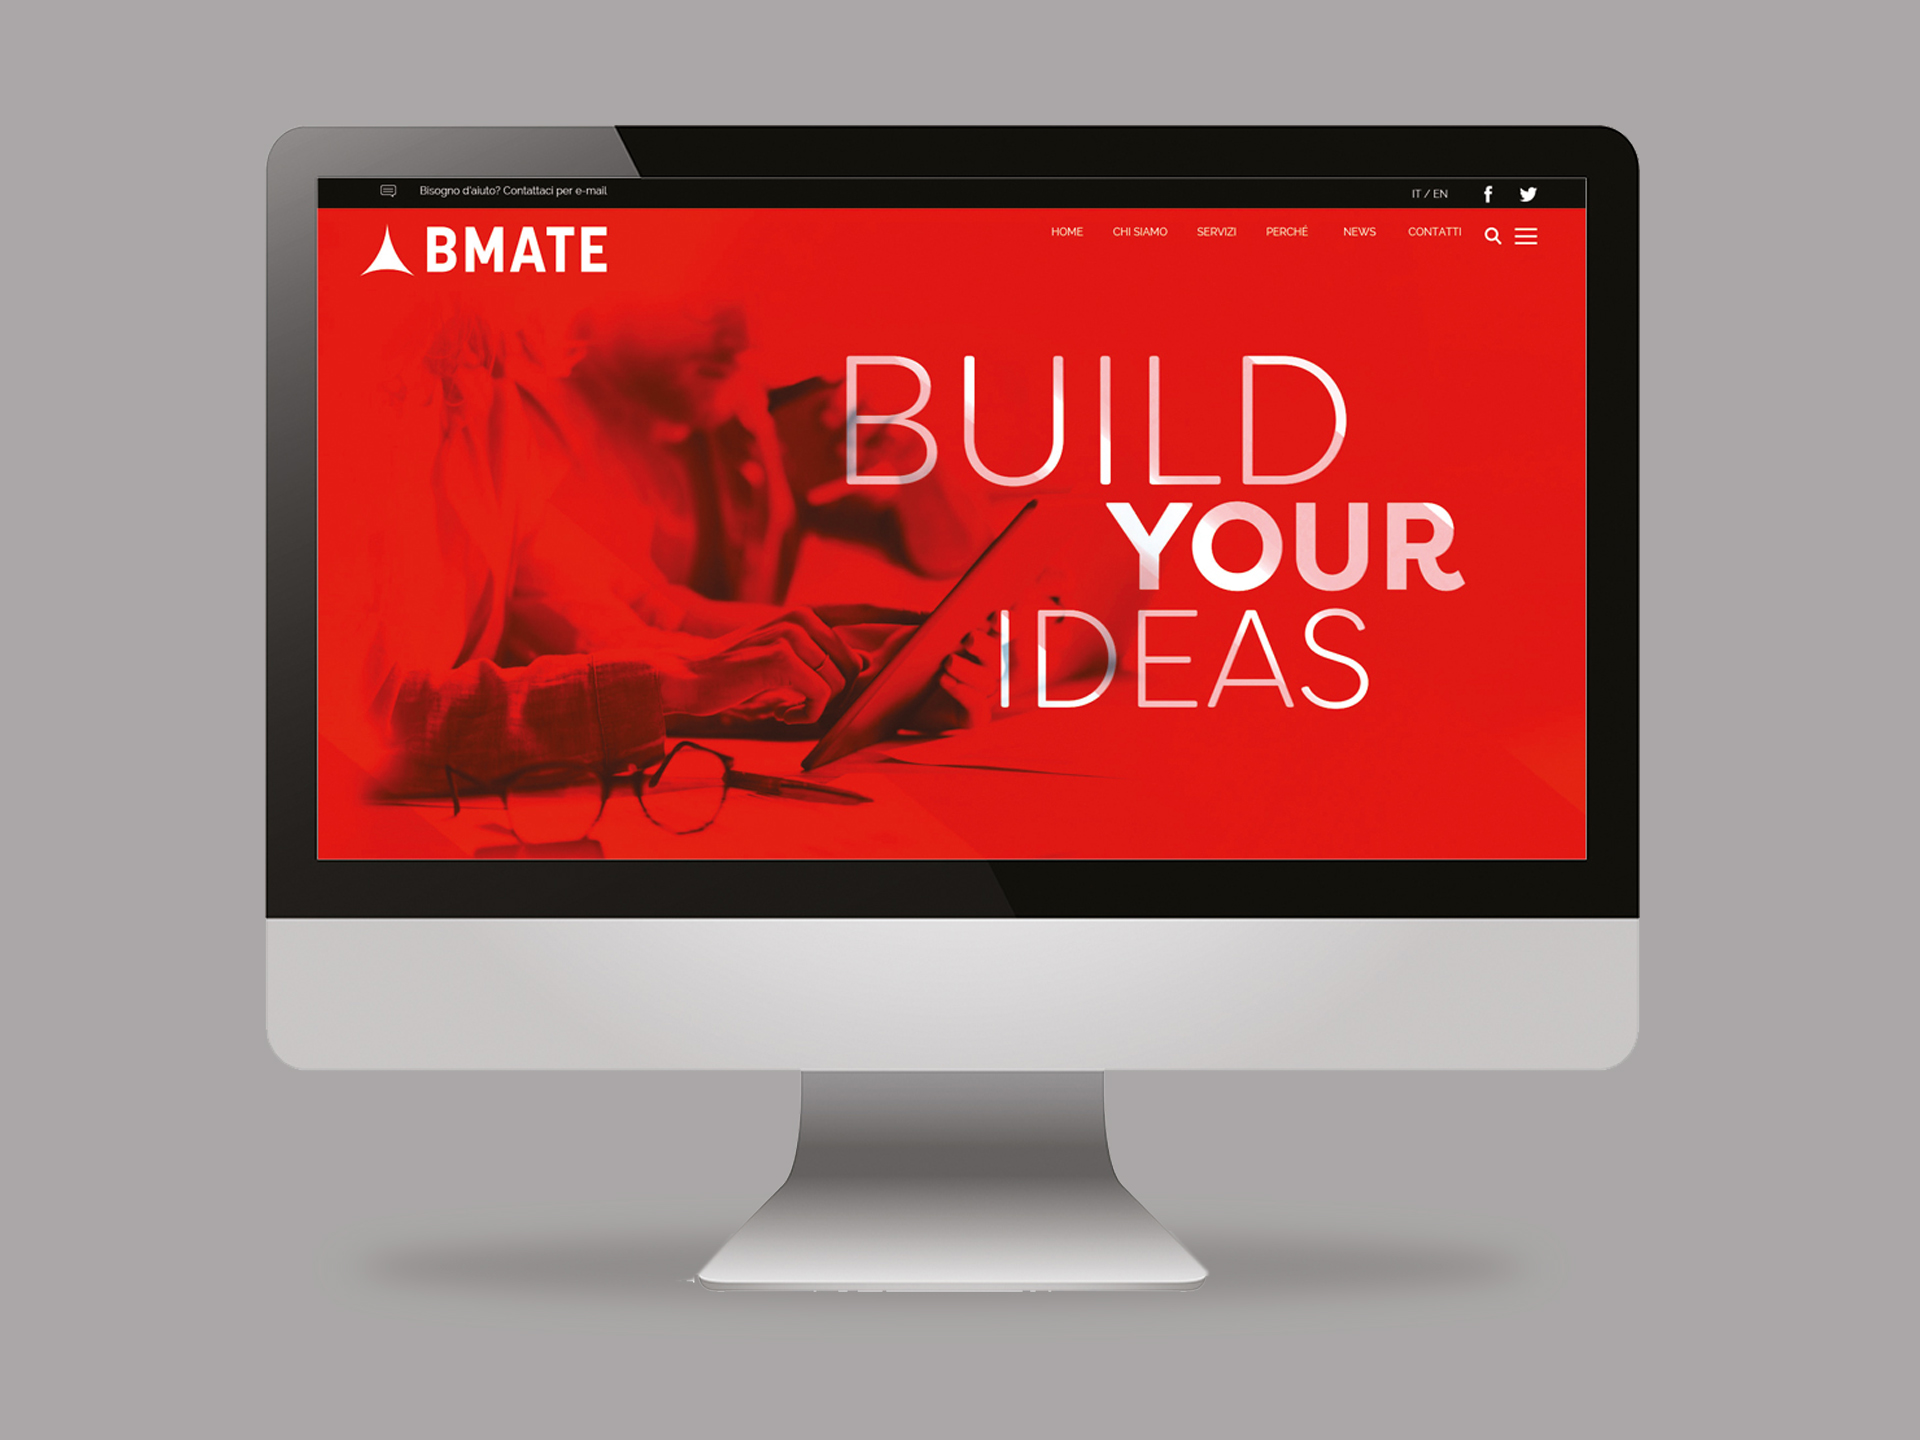 Immagine website BMATE home page